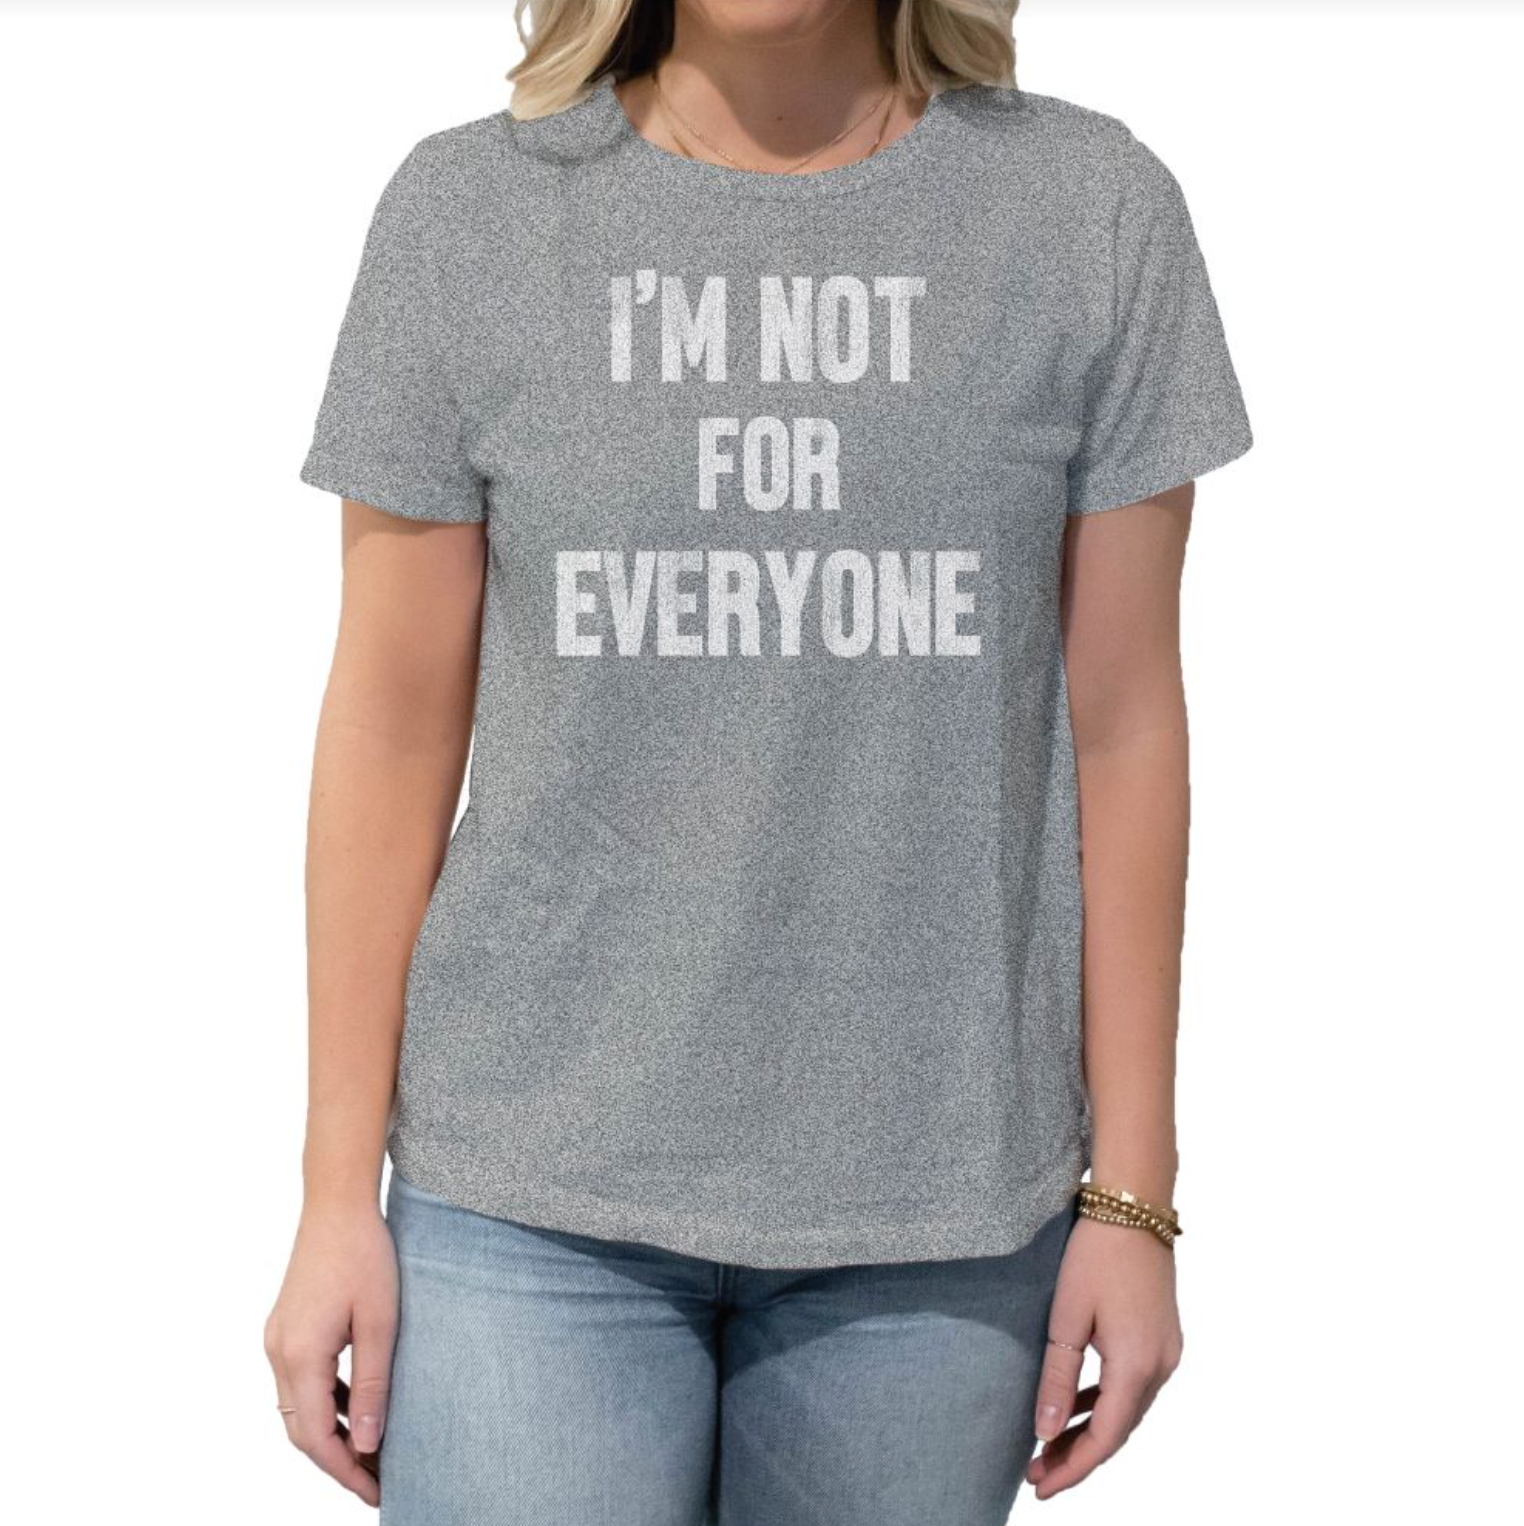 I'm Not For Everyone Women's Crew Tee